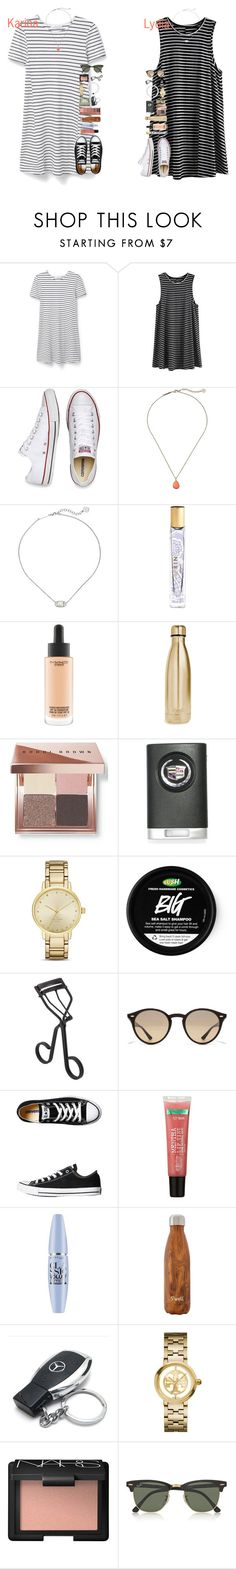 """Karina and Lydia"" by lydia-hh ❤ liked on Polyvore featuring MANGO, Converse, Kendra Scott, AERIN, MAC Cosmetics, S'well, Bobbi Brown Cosmetics, Kate Spade, Surratt and Ray-Ban"